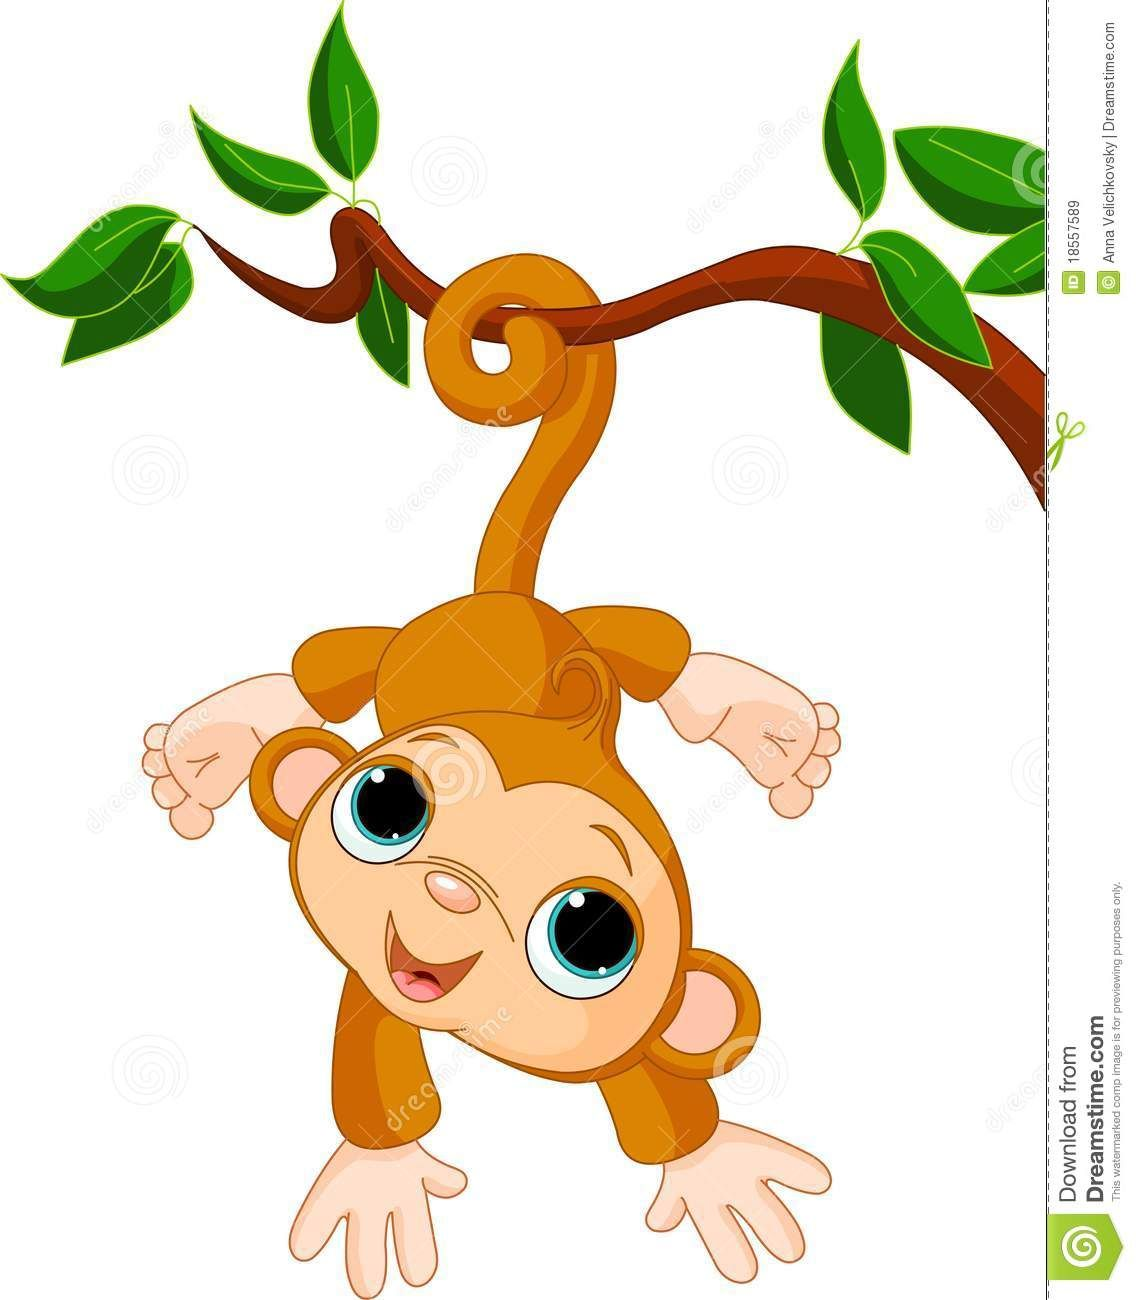 1136x1300 Girl Monkey Clip Art Monkey In A Tree Clipart Baby Monkey Tree